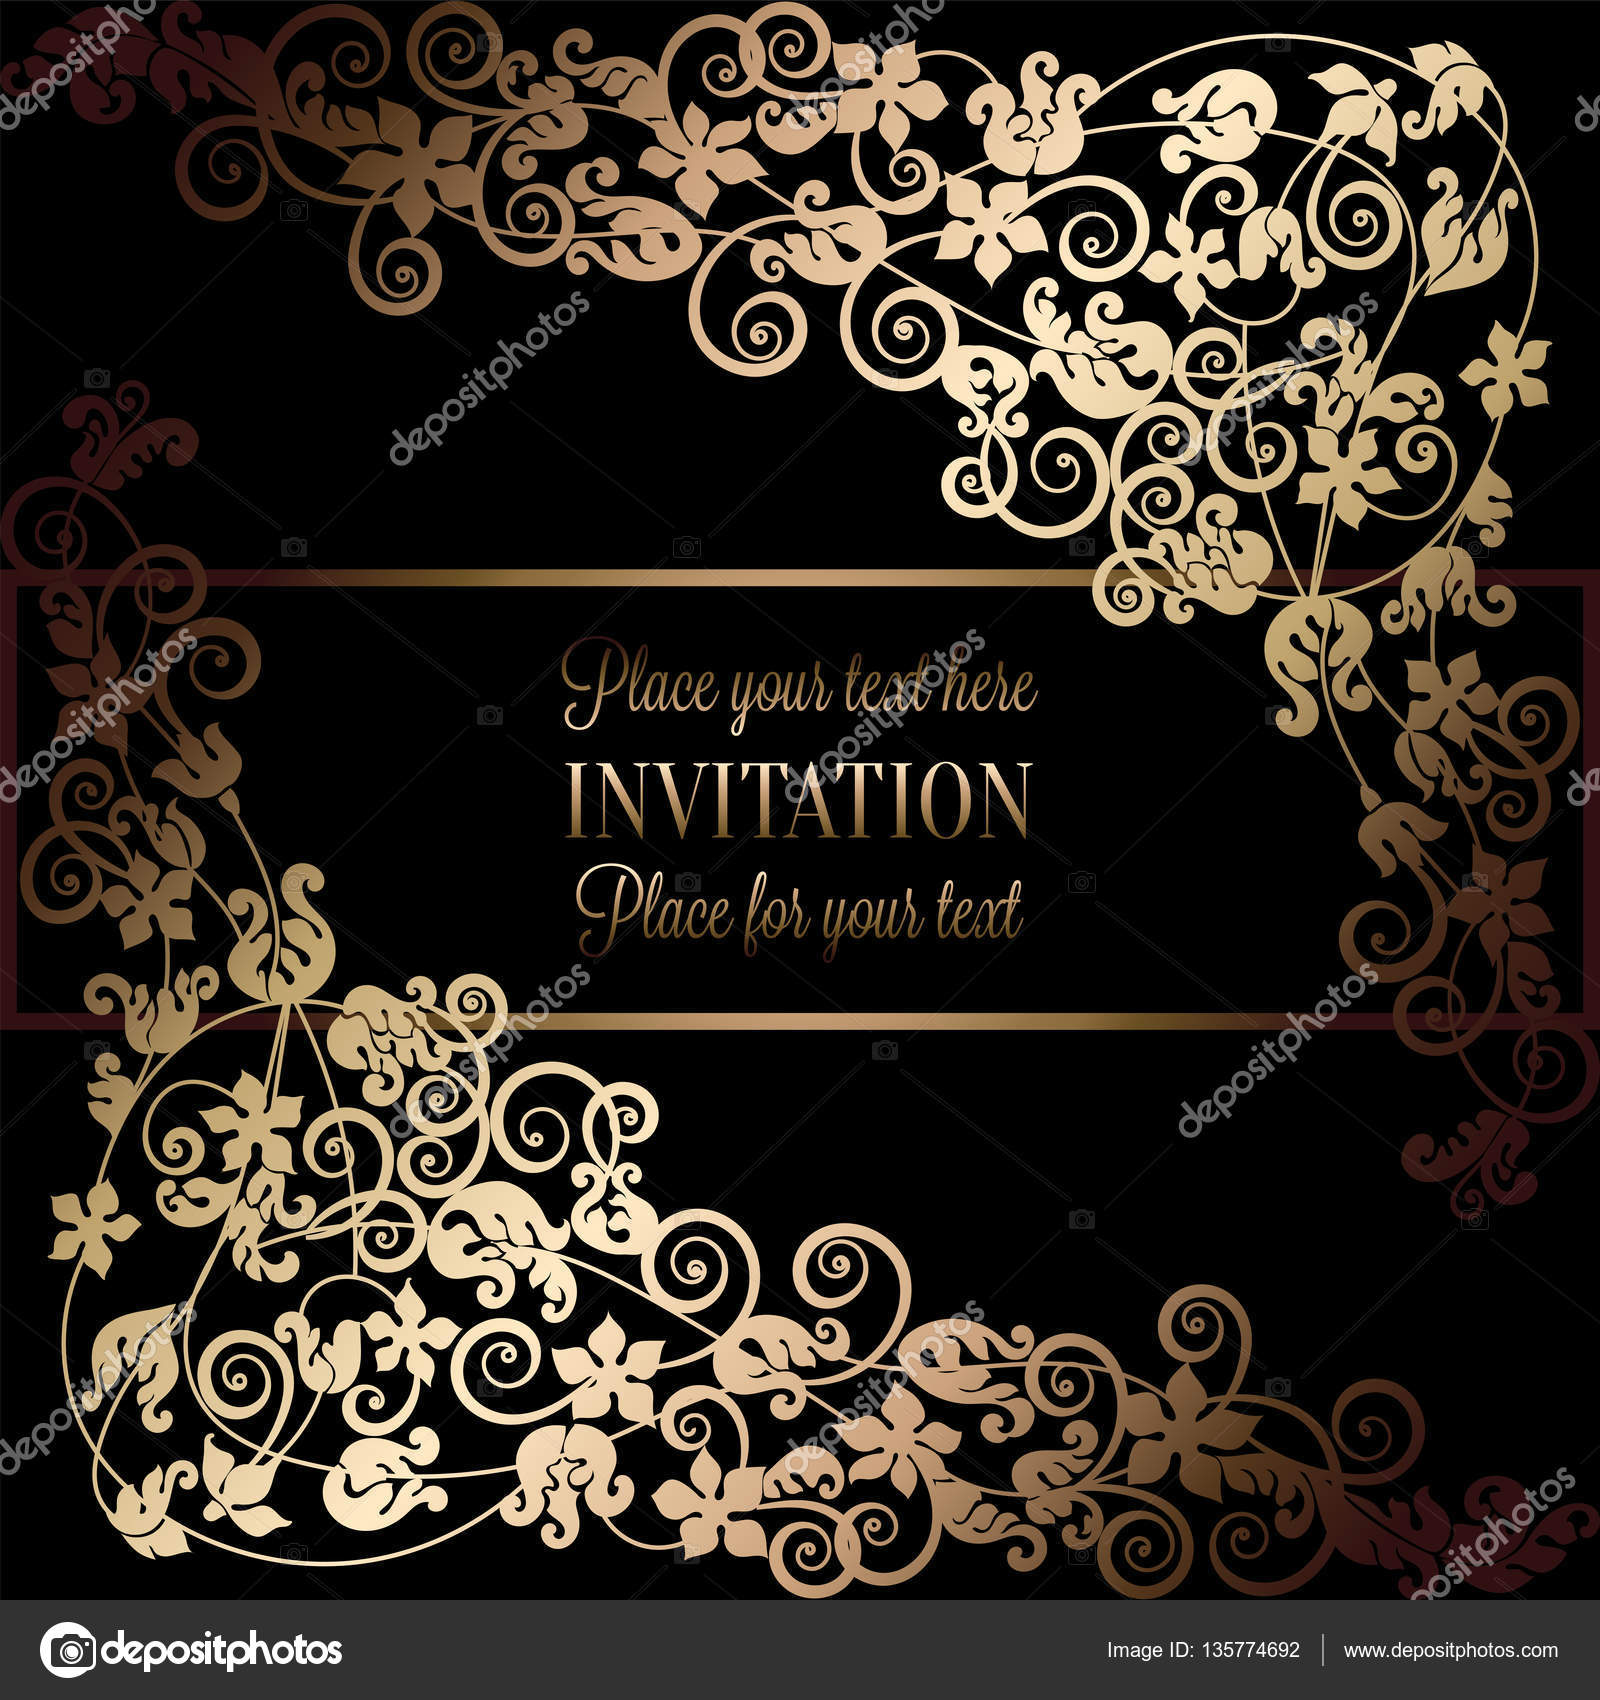 Floral Background With Antique Luxury Black And Gold Vintage Frame Victorian Banner Damask Wallpaper Ornaments Invitation Card Baroque Style